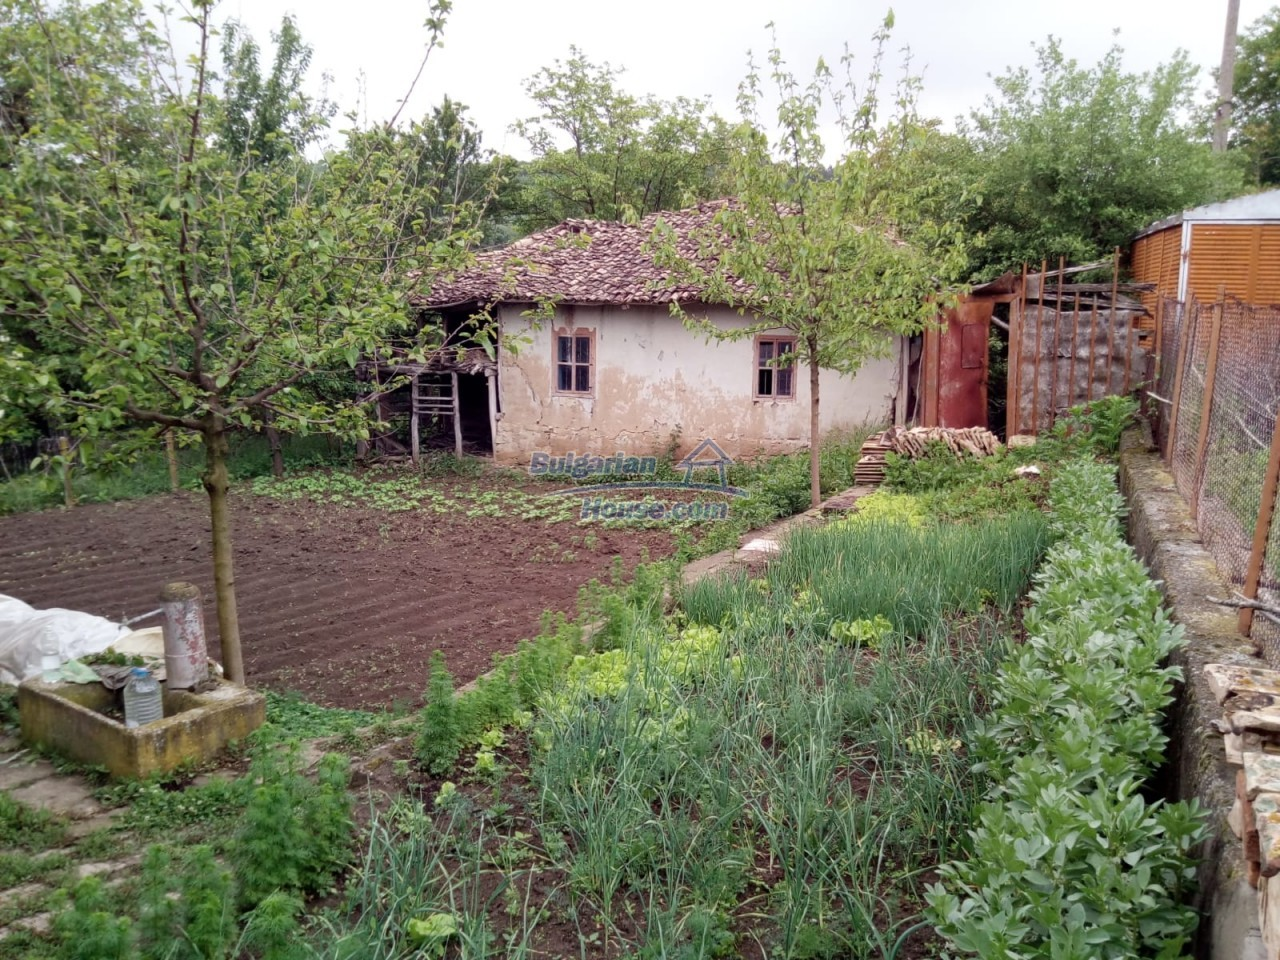 12851:83 - MARVELLOUS VIEWS, garden 8000 sq.m, two houses, farm buildings